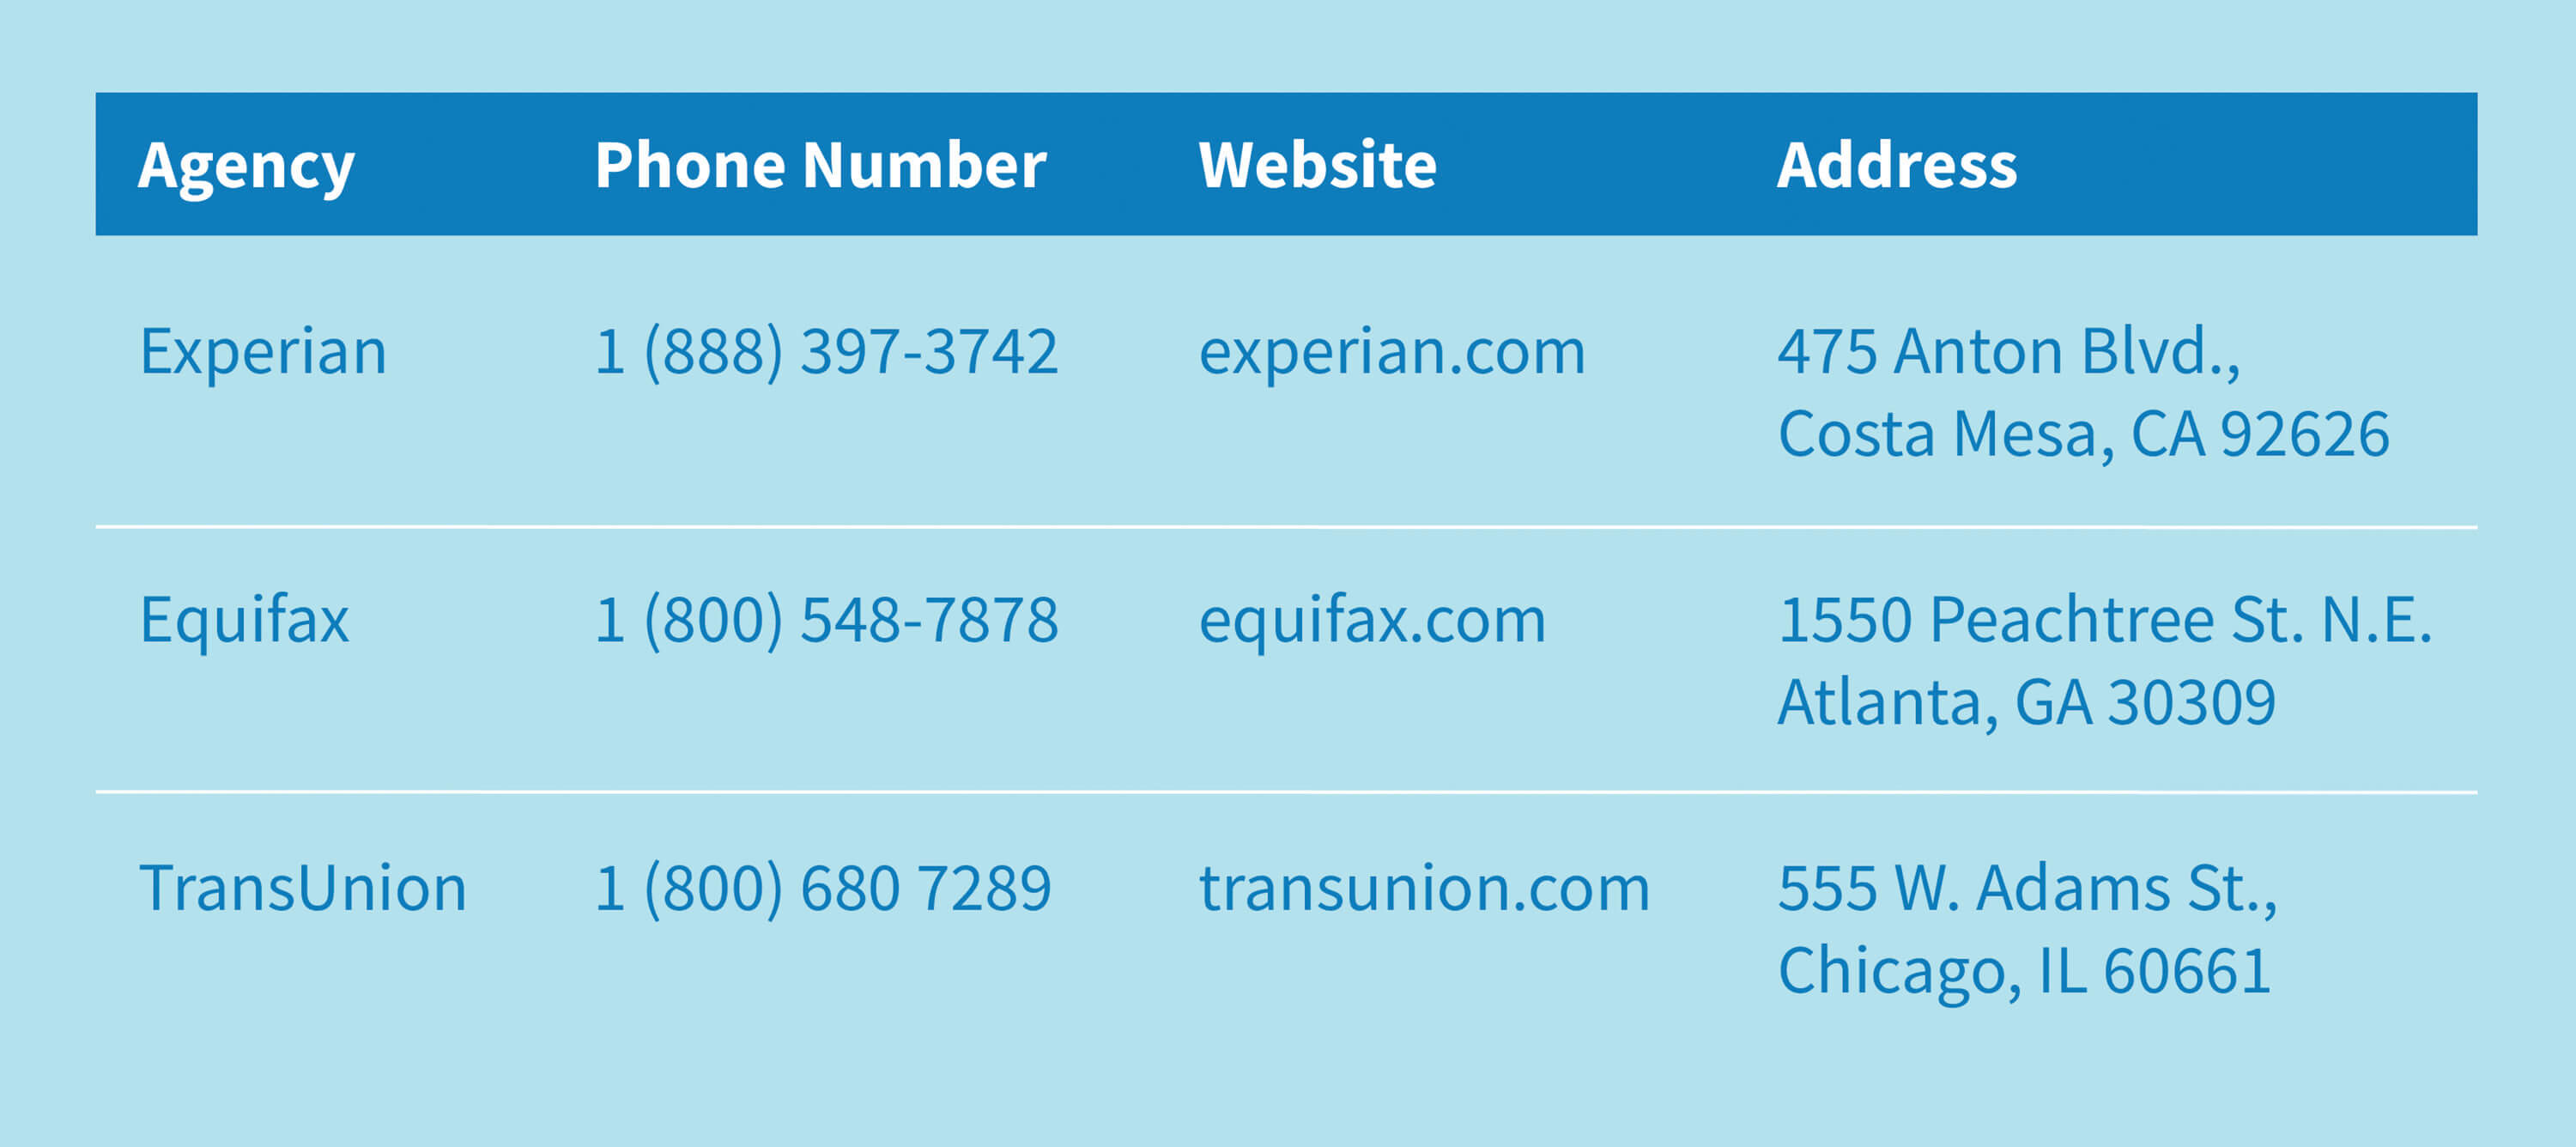 Contact information for the fraud divisions of Experian, Equifax and TransUnion.